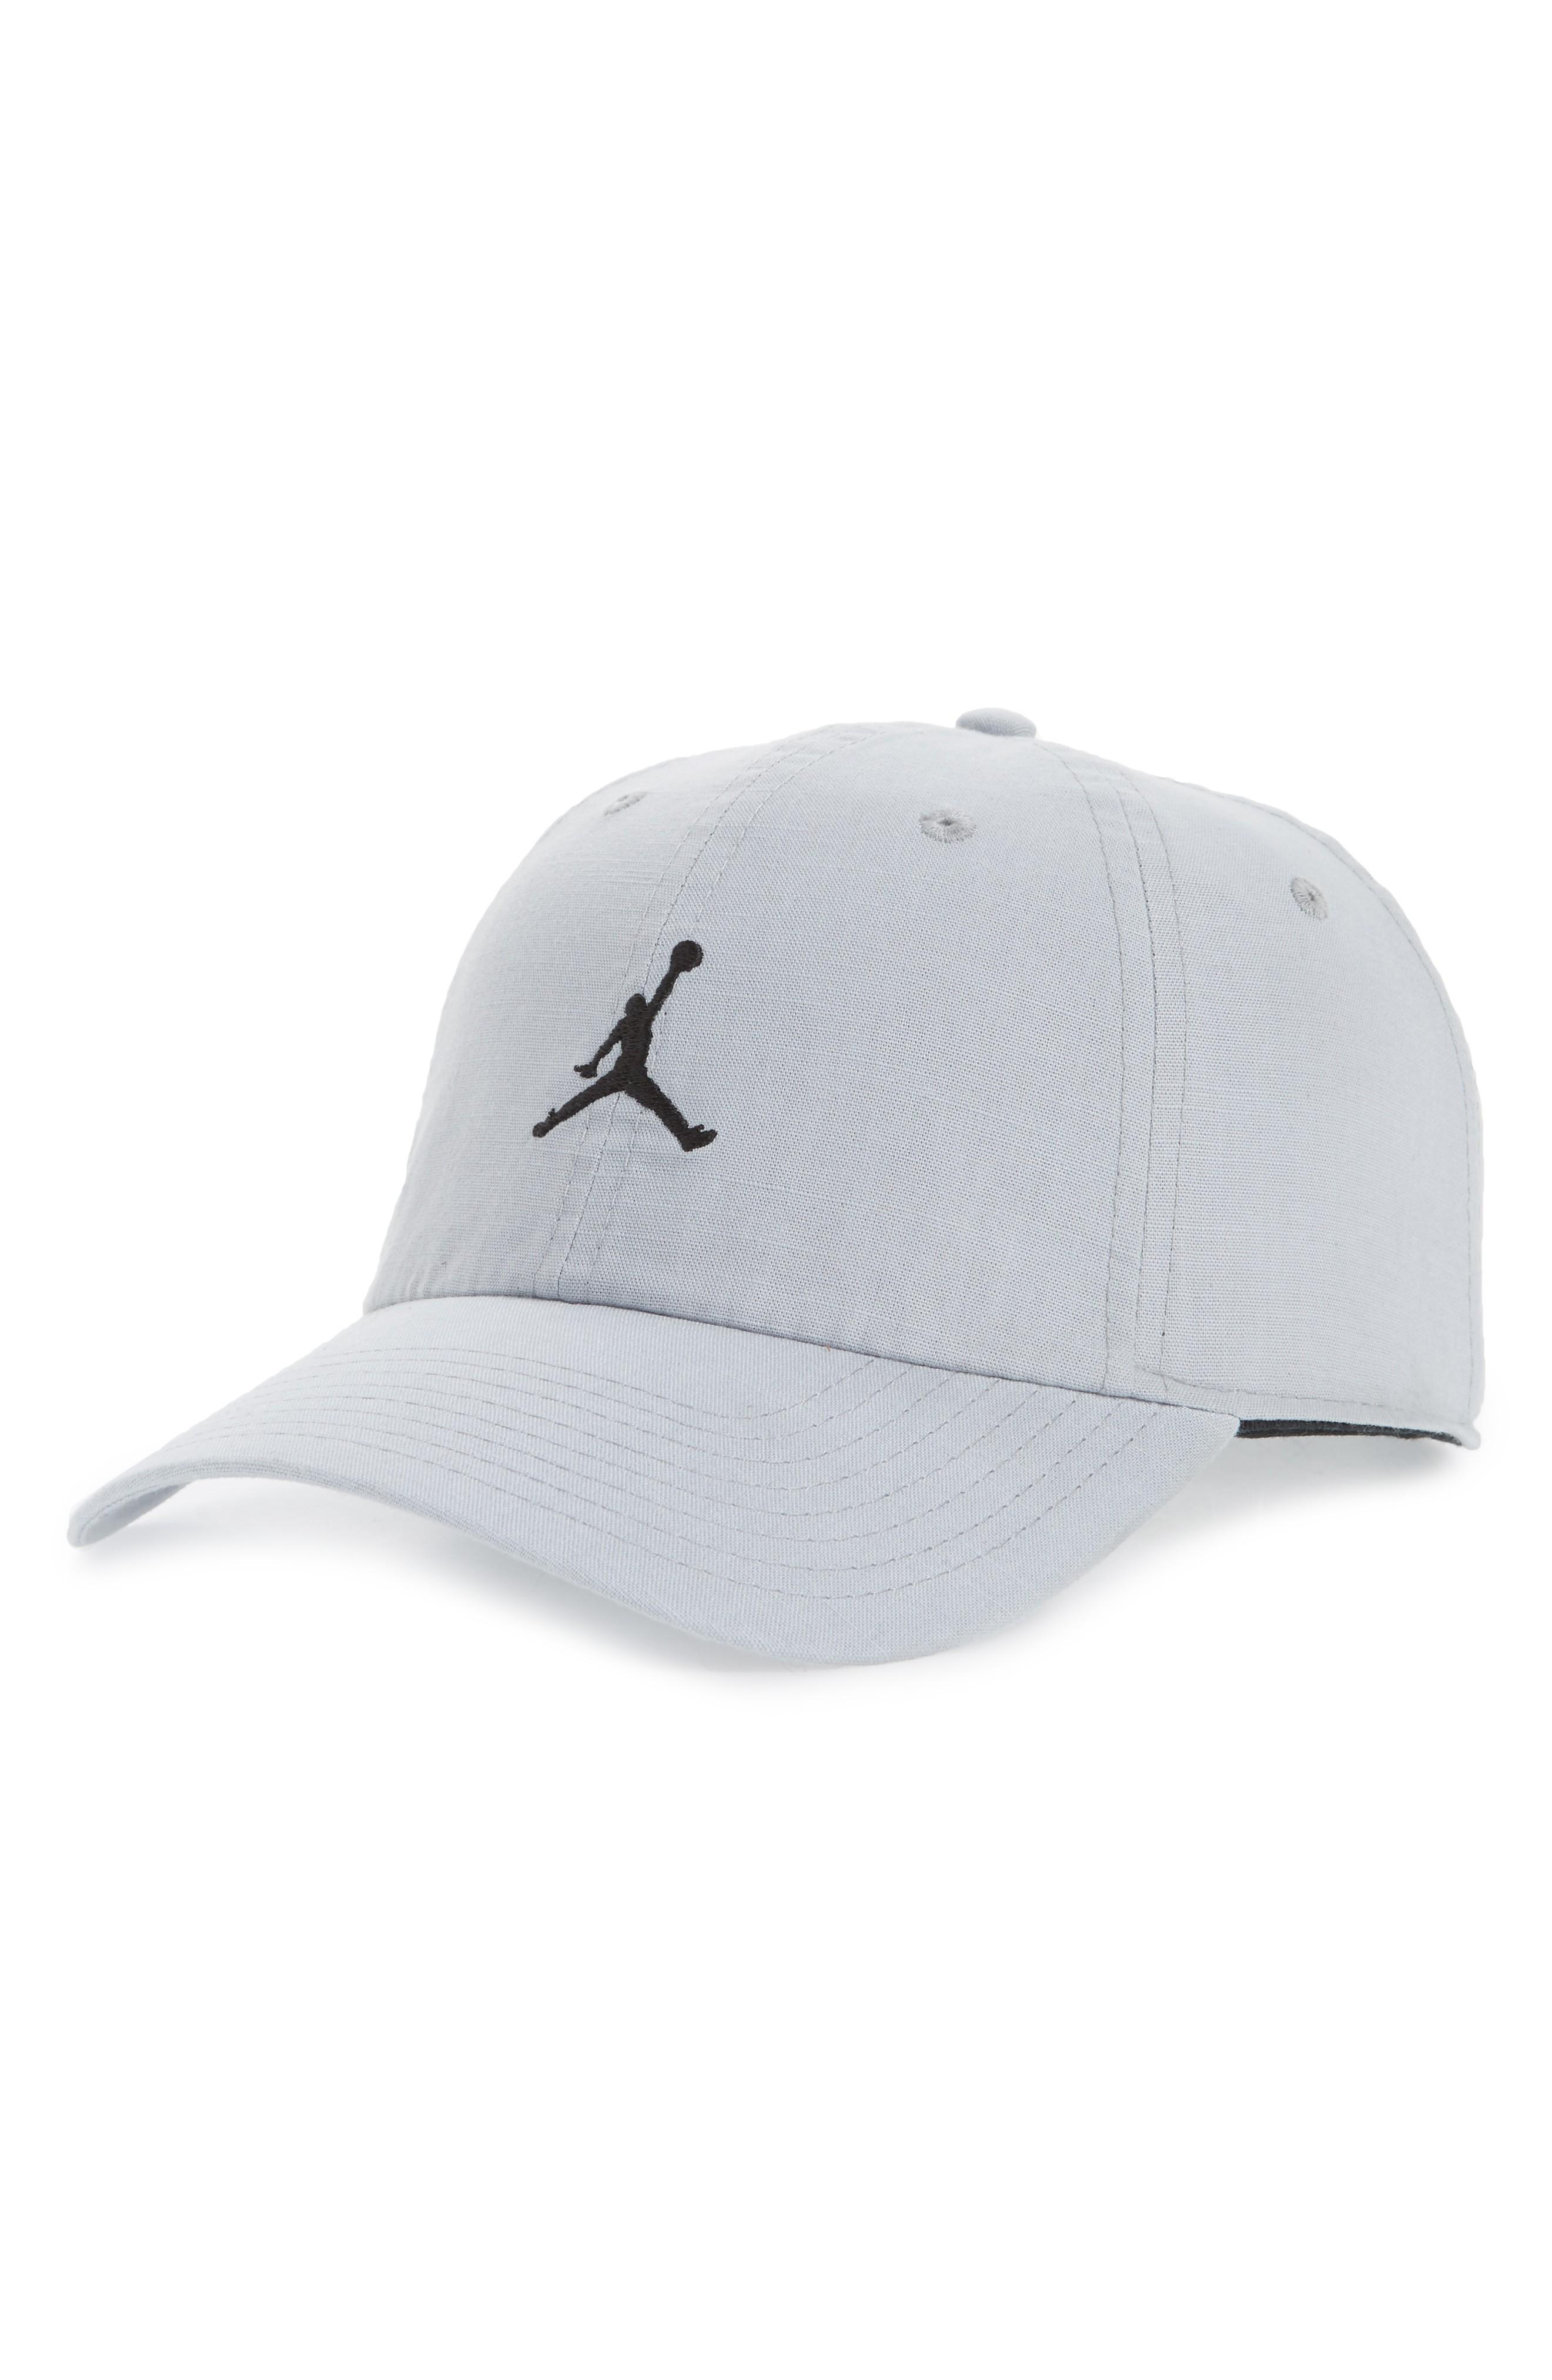 hot sale online 600e1 c0d3b Nike Jordan H86 Jumpman Washed Baseball Cap - Black In Wolf Grey  Black